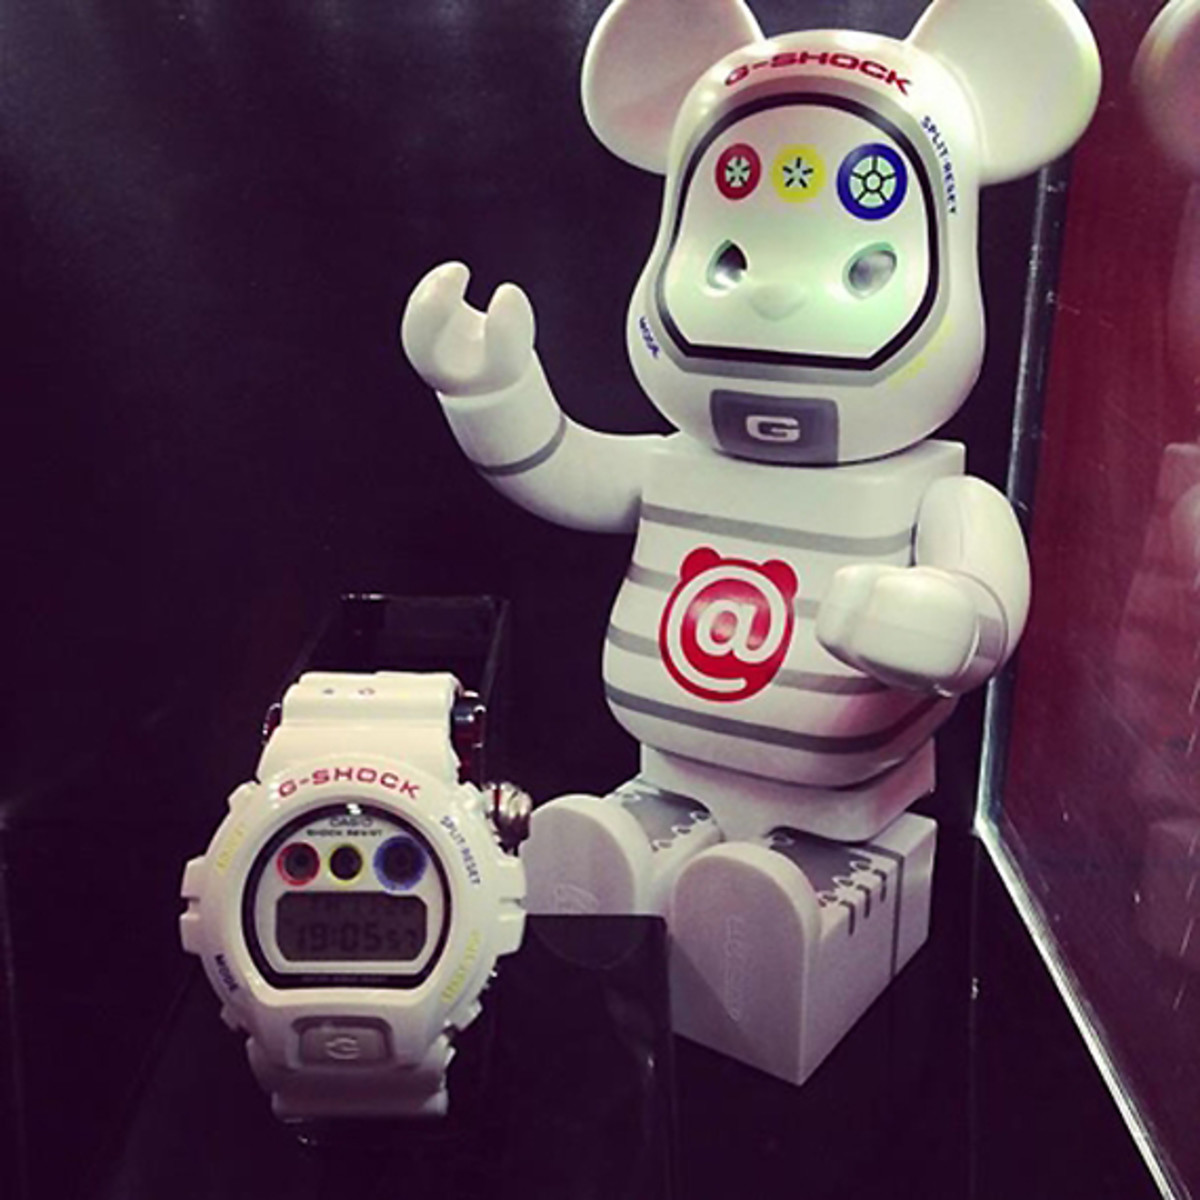 medicom-toy-casio-g-shock-30th-anniversary-bearbrick-01